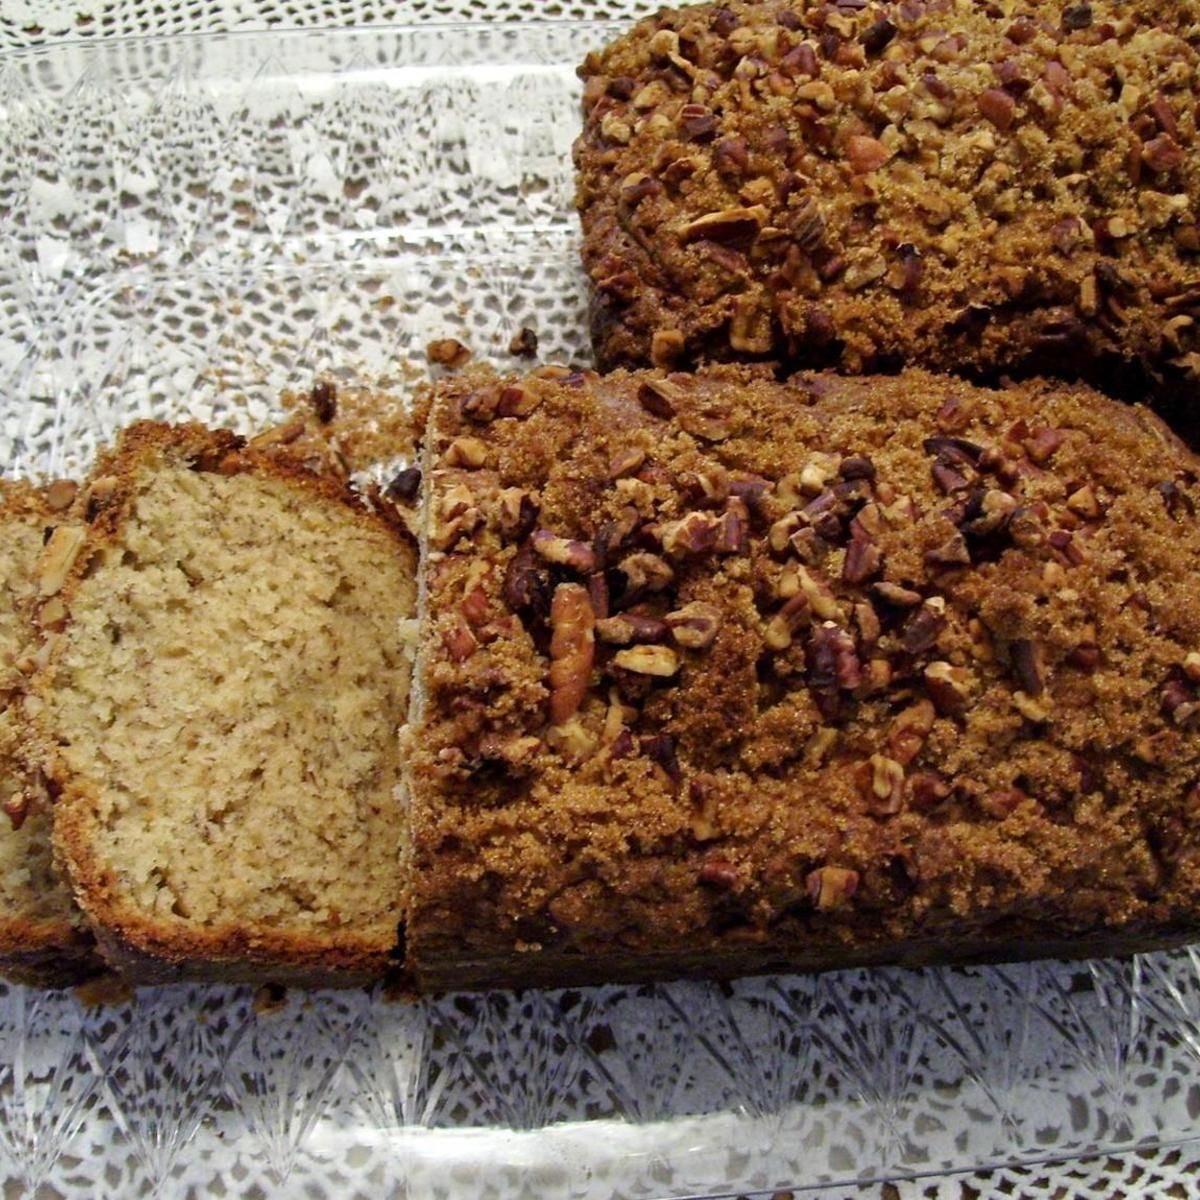 I have found this recipe to be very moist.  It makes ordinary banana bread a special treat.  Hint: Create layers.  Pour 1/4 of the batter in the pan, add the pecans & brown sugar, then top with a little more batter, and more topping for a layered effect.  You layer it in the pan, and it becomes a wonderful surprise to the ordinary banana bread we have all come to know.   The photo is not layered... my oops.  I forgot about it until I got to the pecans, but it sure didn't hurt the flavor.